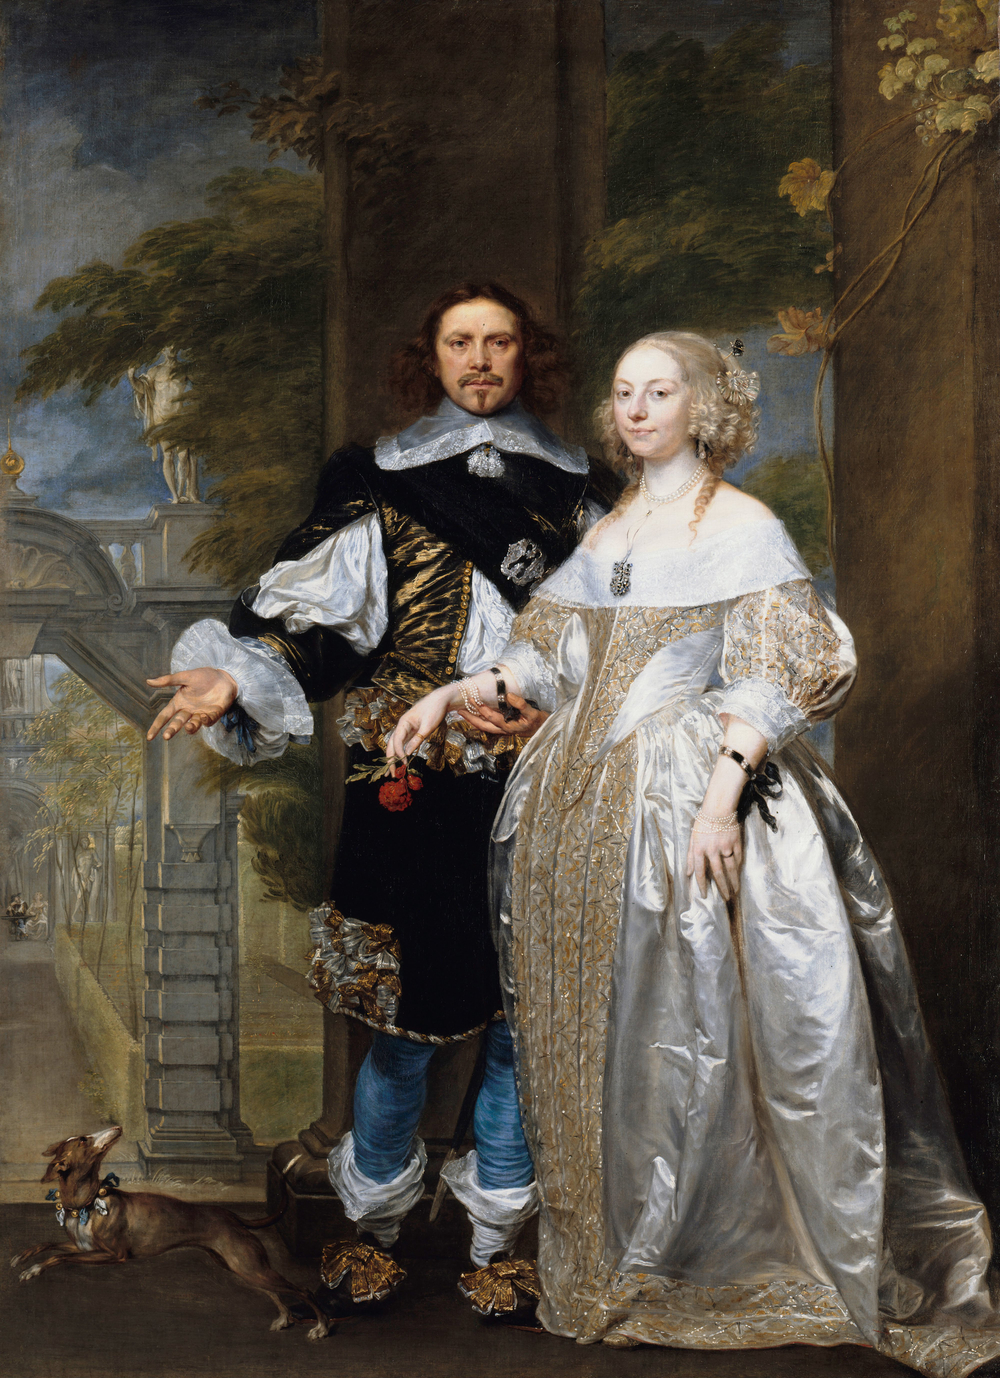 Coques_(attributed)_-_Portrait_of_a_Married_Couple_in_the_Park_-_Google_Art_Project.jpg